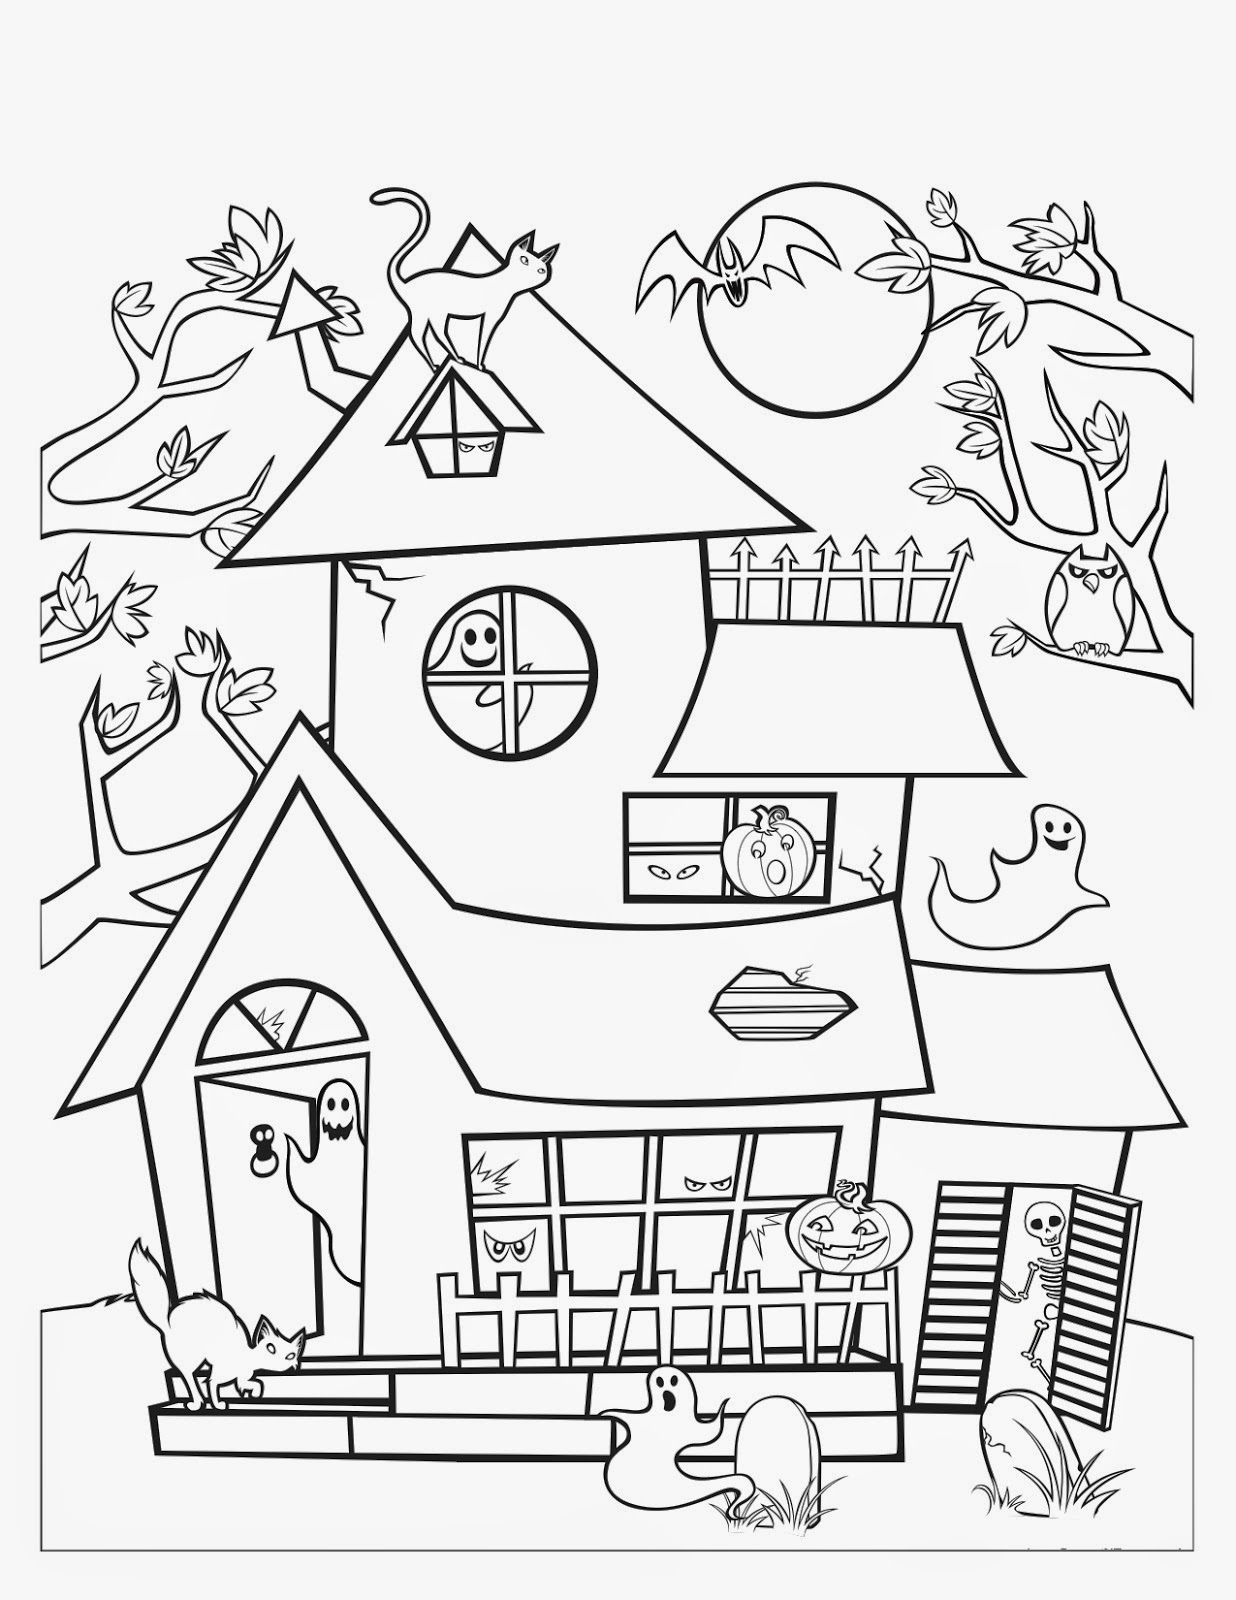 Haunted House Coloring Pages Printables at GetDrawings.com ...